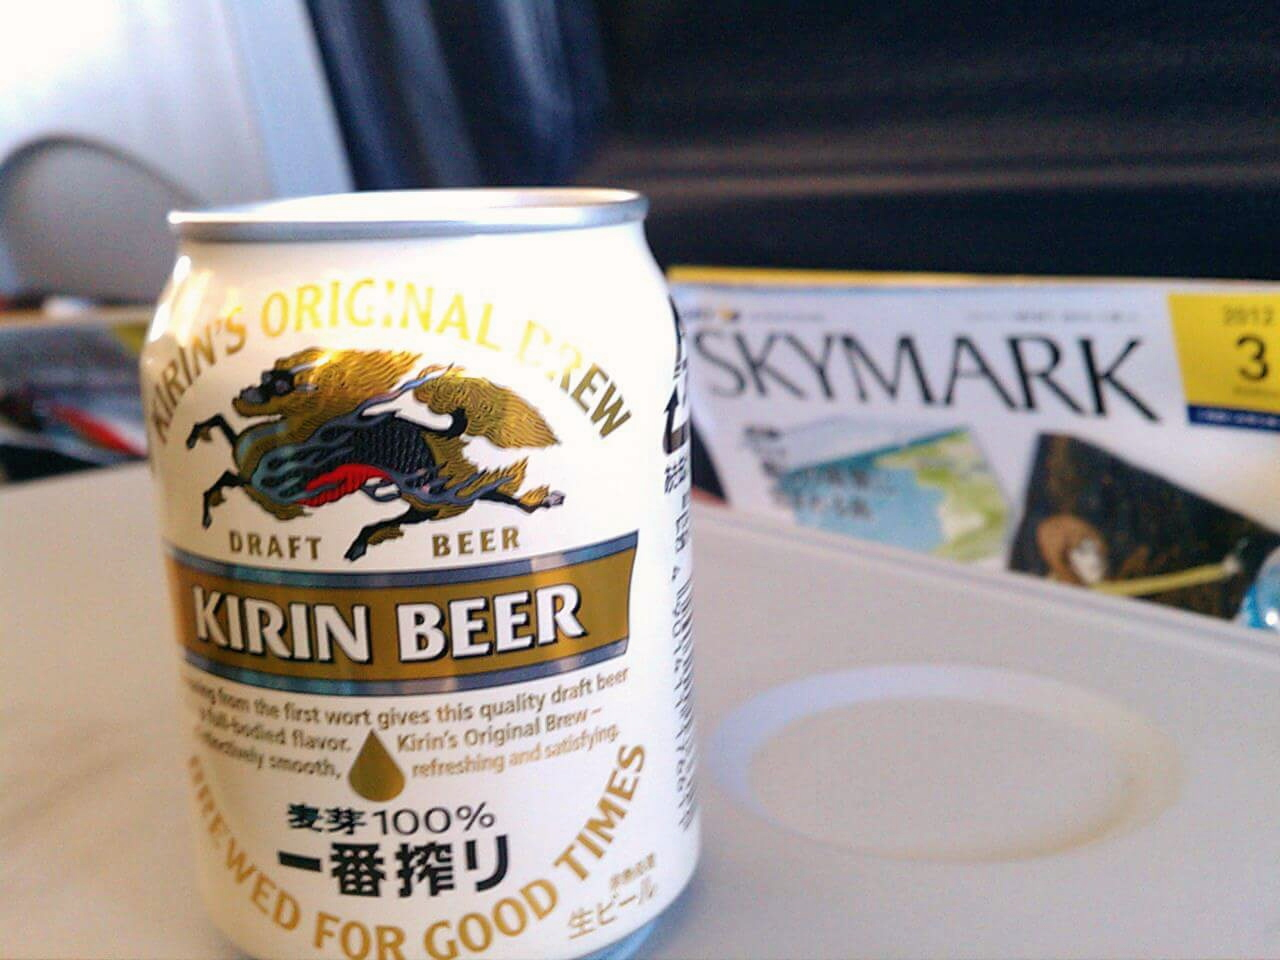 Skymark Airlines on my way to Okinawa. Definitely good times :)